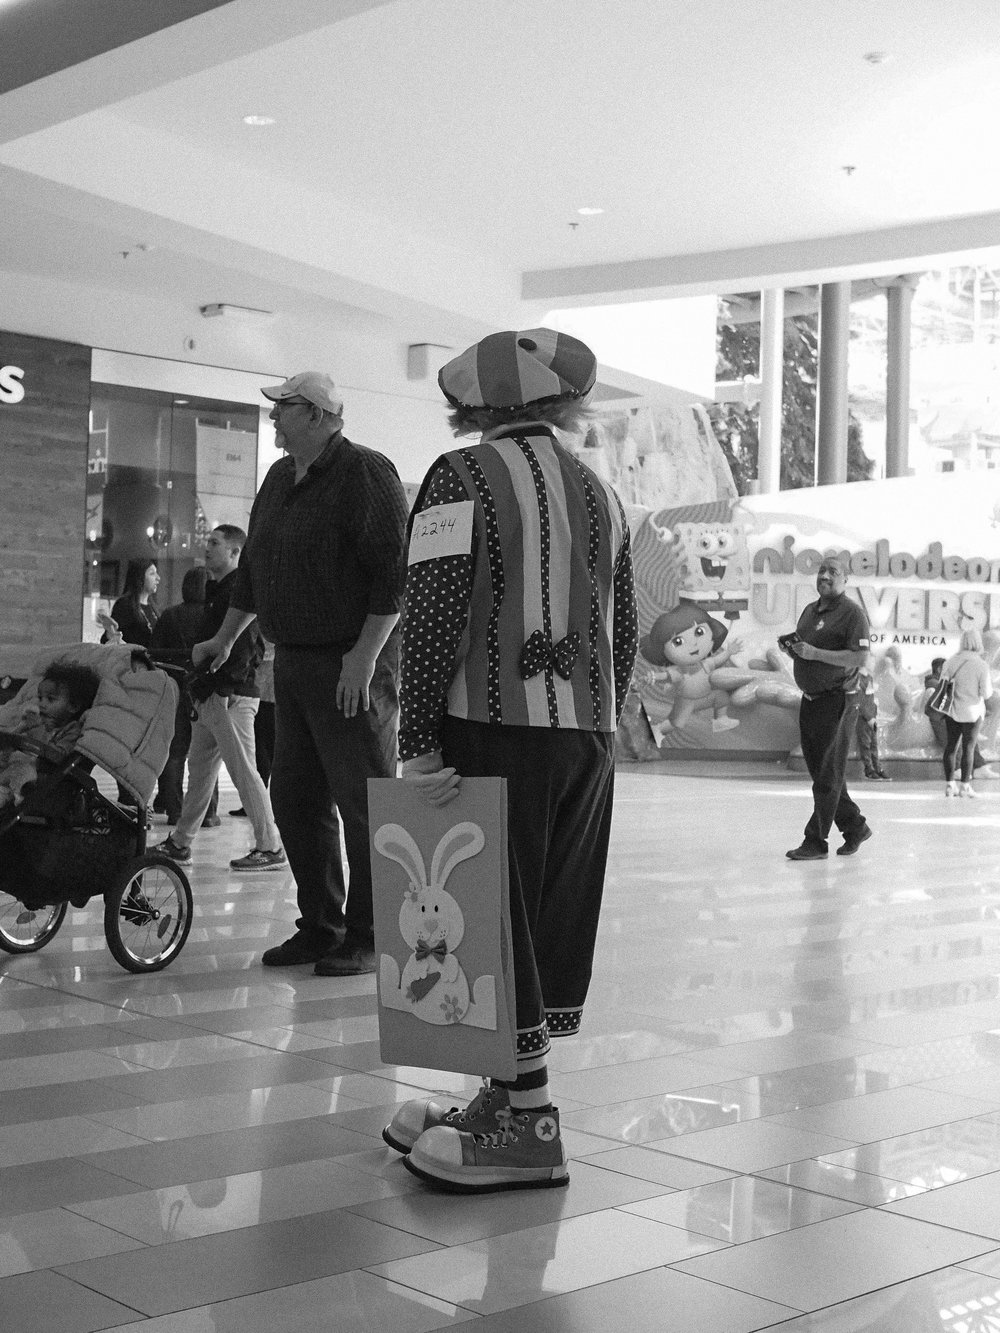 Clown in the Mall. Minnesota.